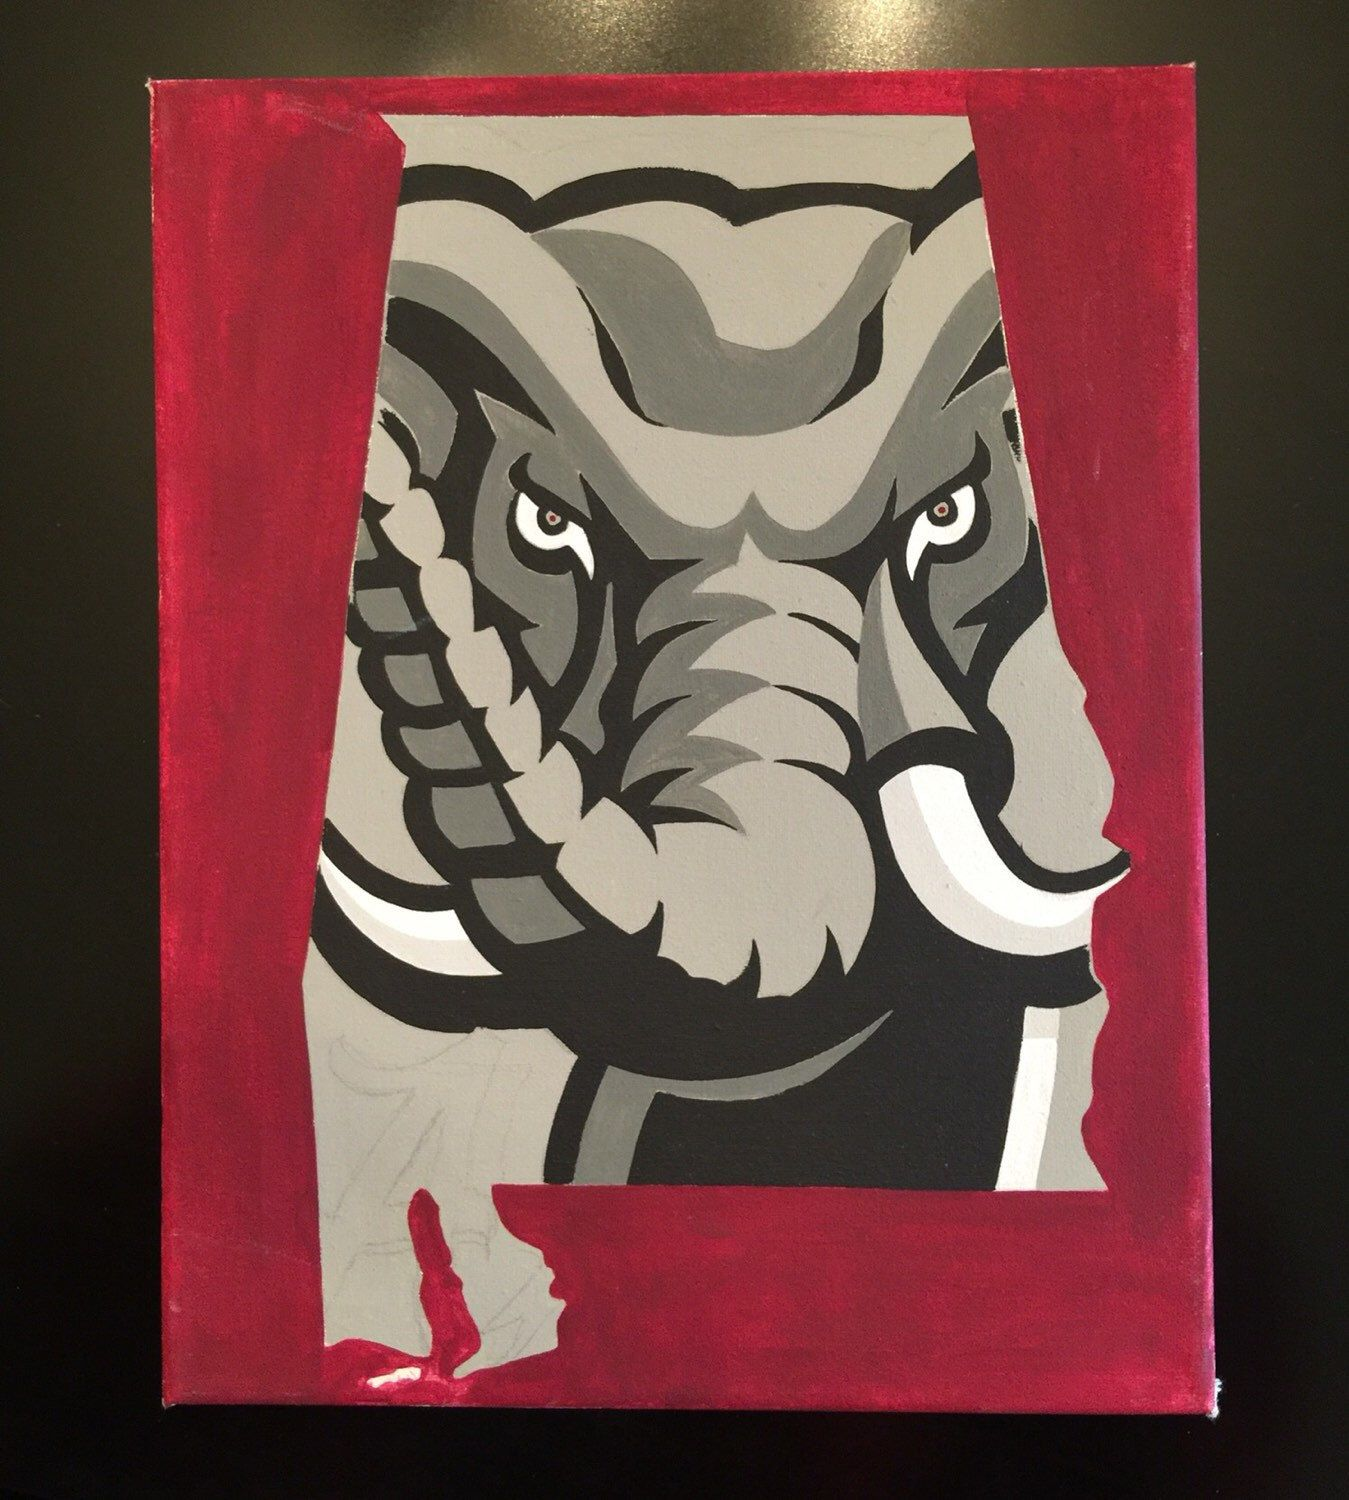 Roll Tide State Silhouette Still In Progress Alabama Crimson Tide Football Wallpaper Football Paintings Painting Crafts